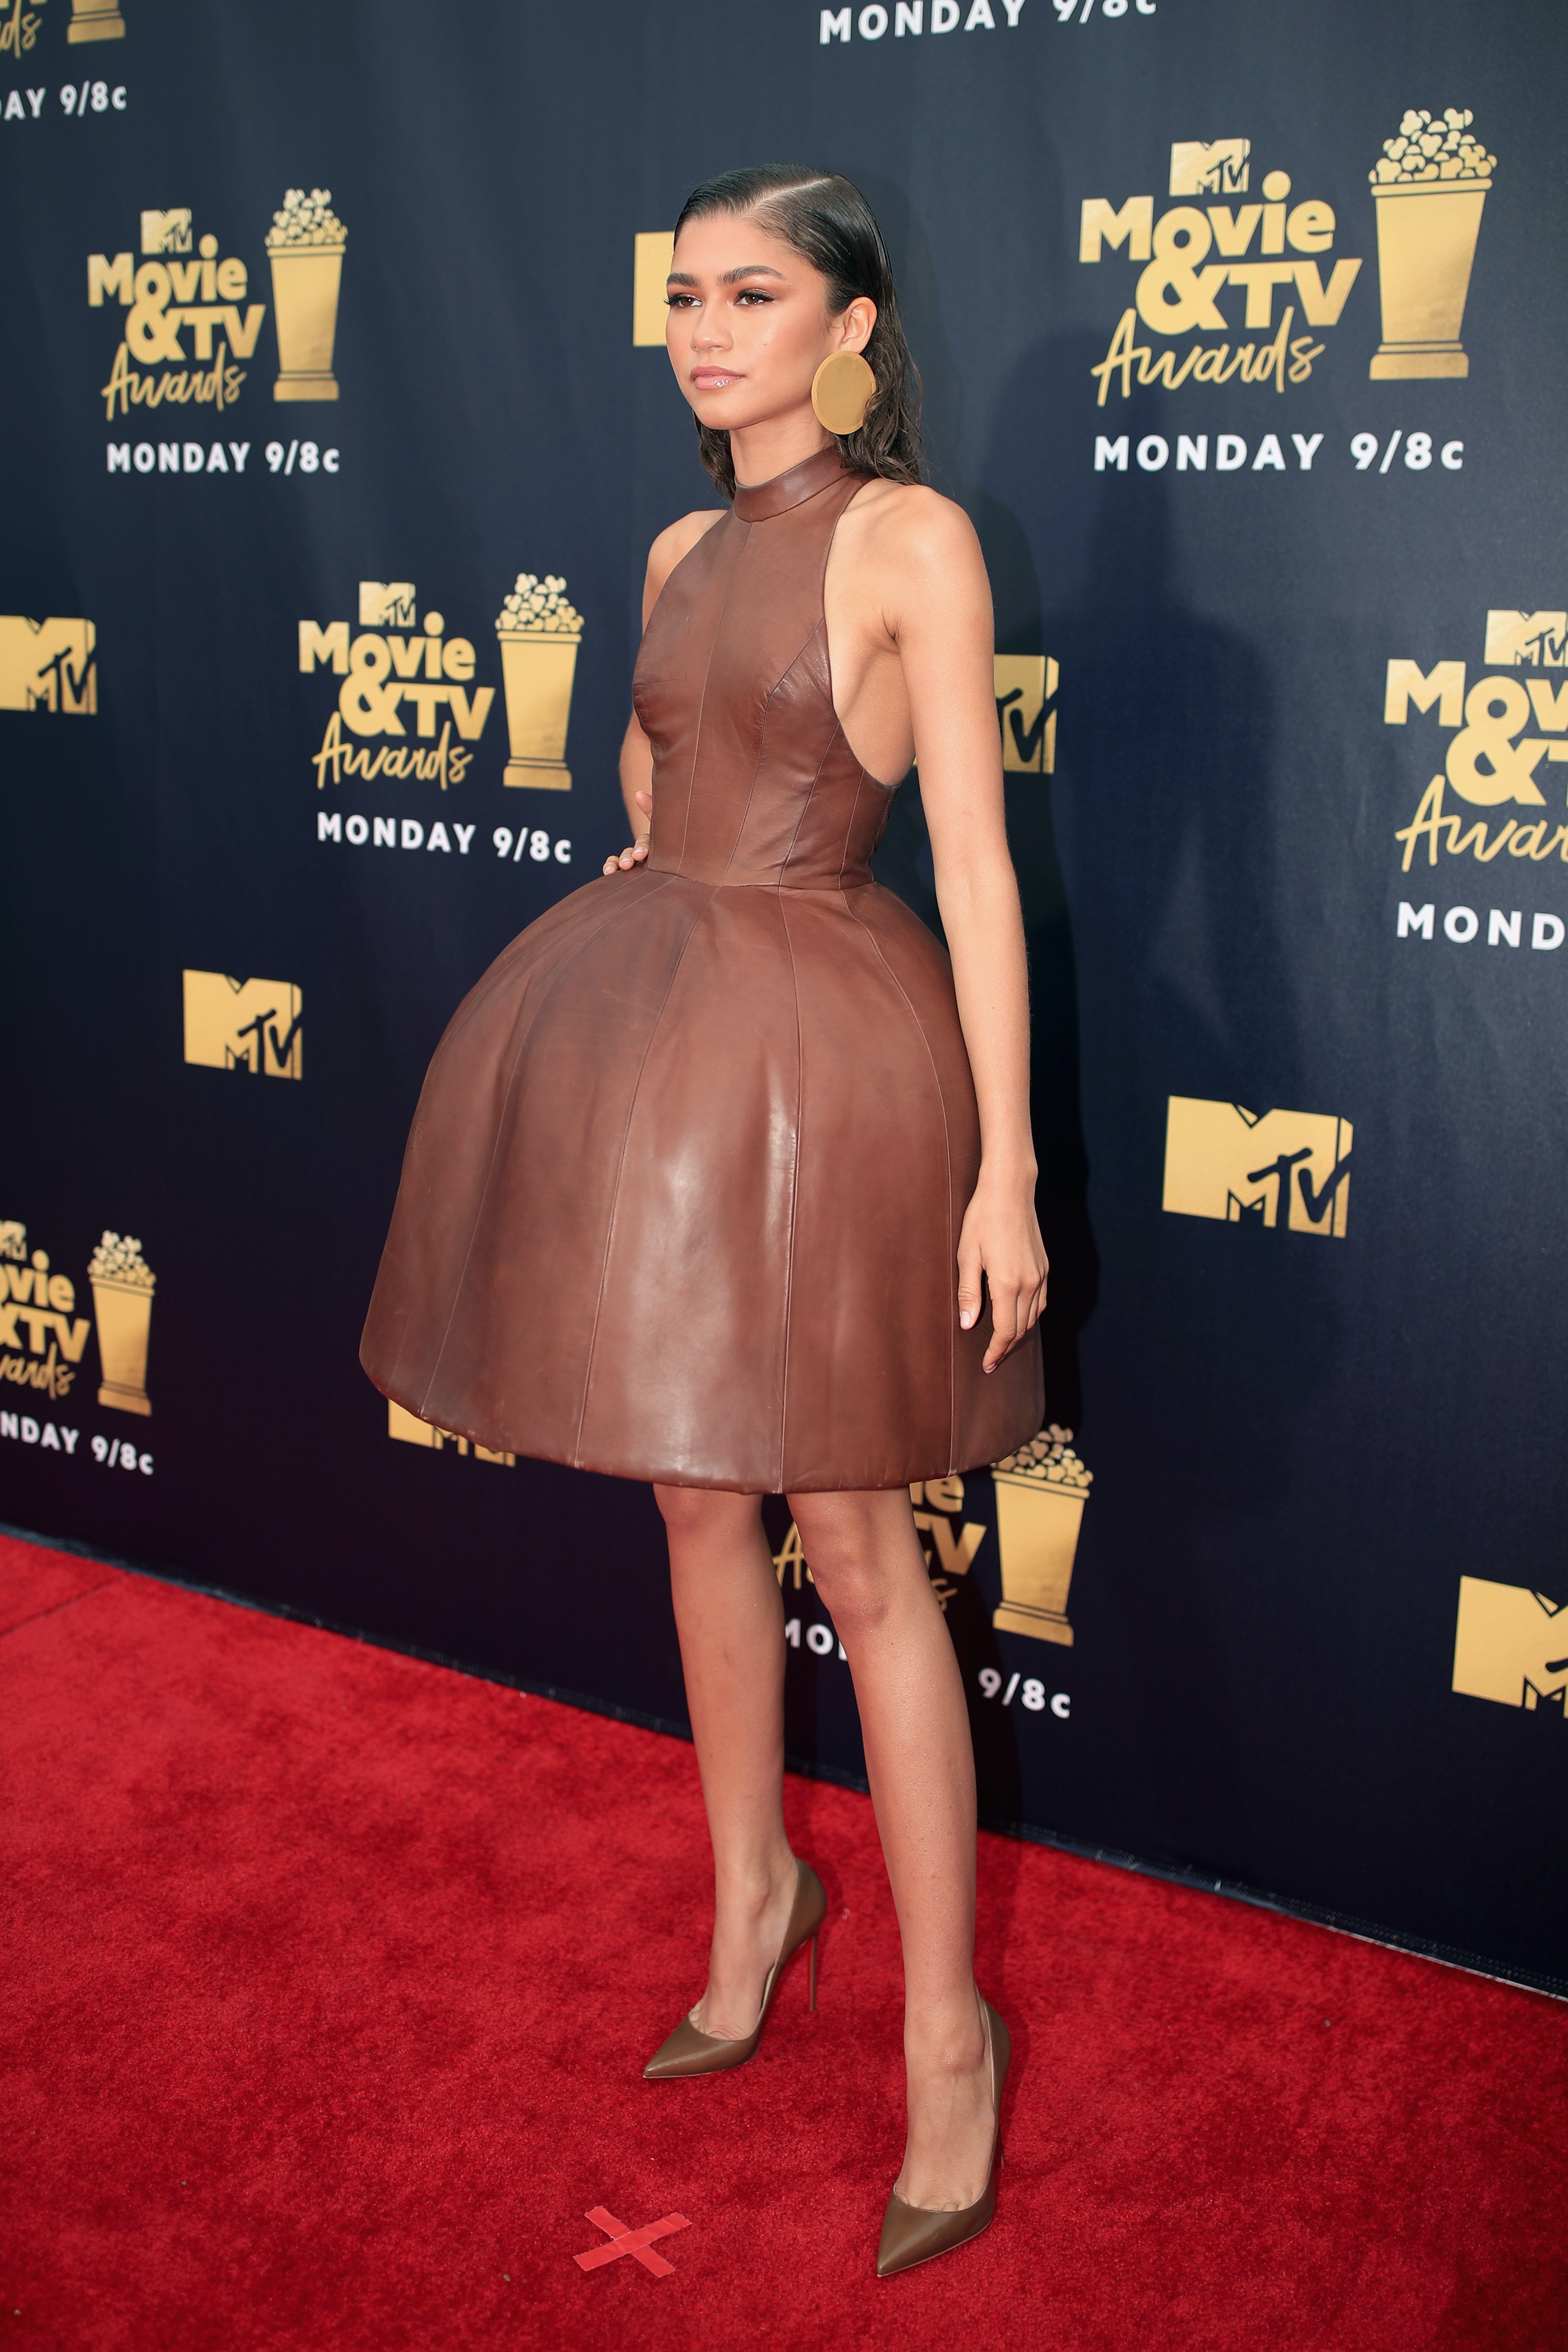 Alisha Boe Feet all the looks at the 2018 mtv movie & tv awards that you